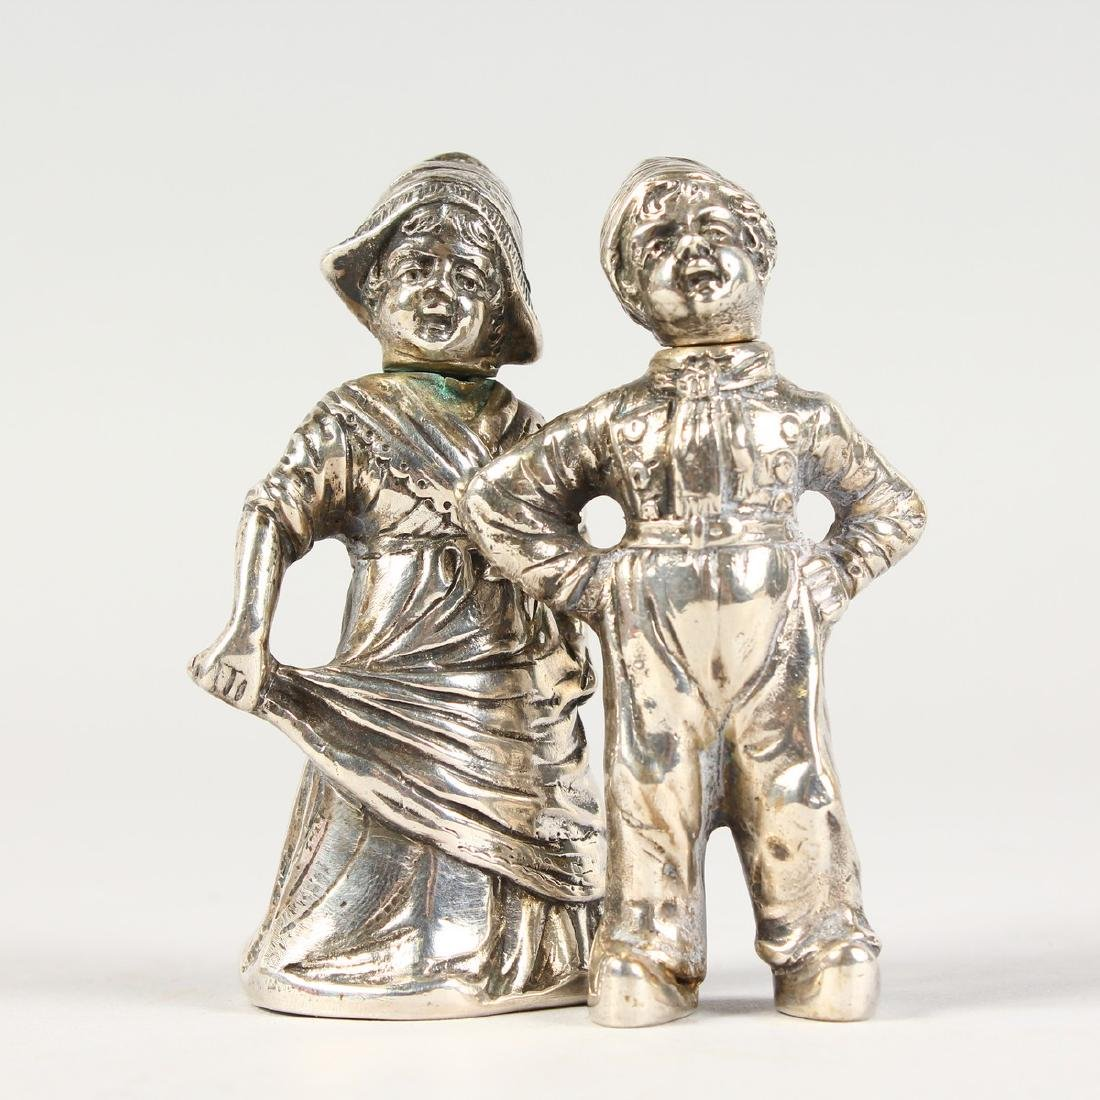 A PAIR OF SILVER DUTCH BOY AND GIRL SALT AND PEPPERS.